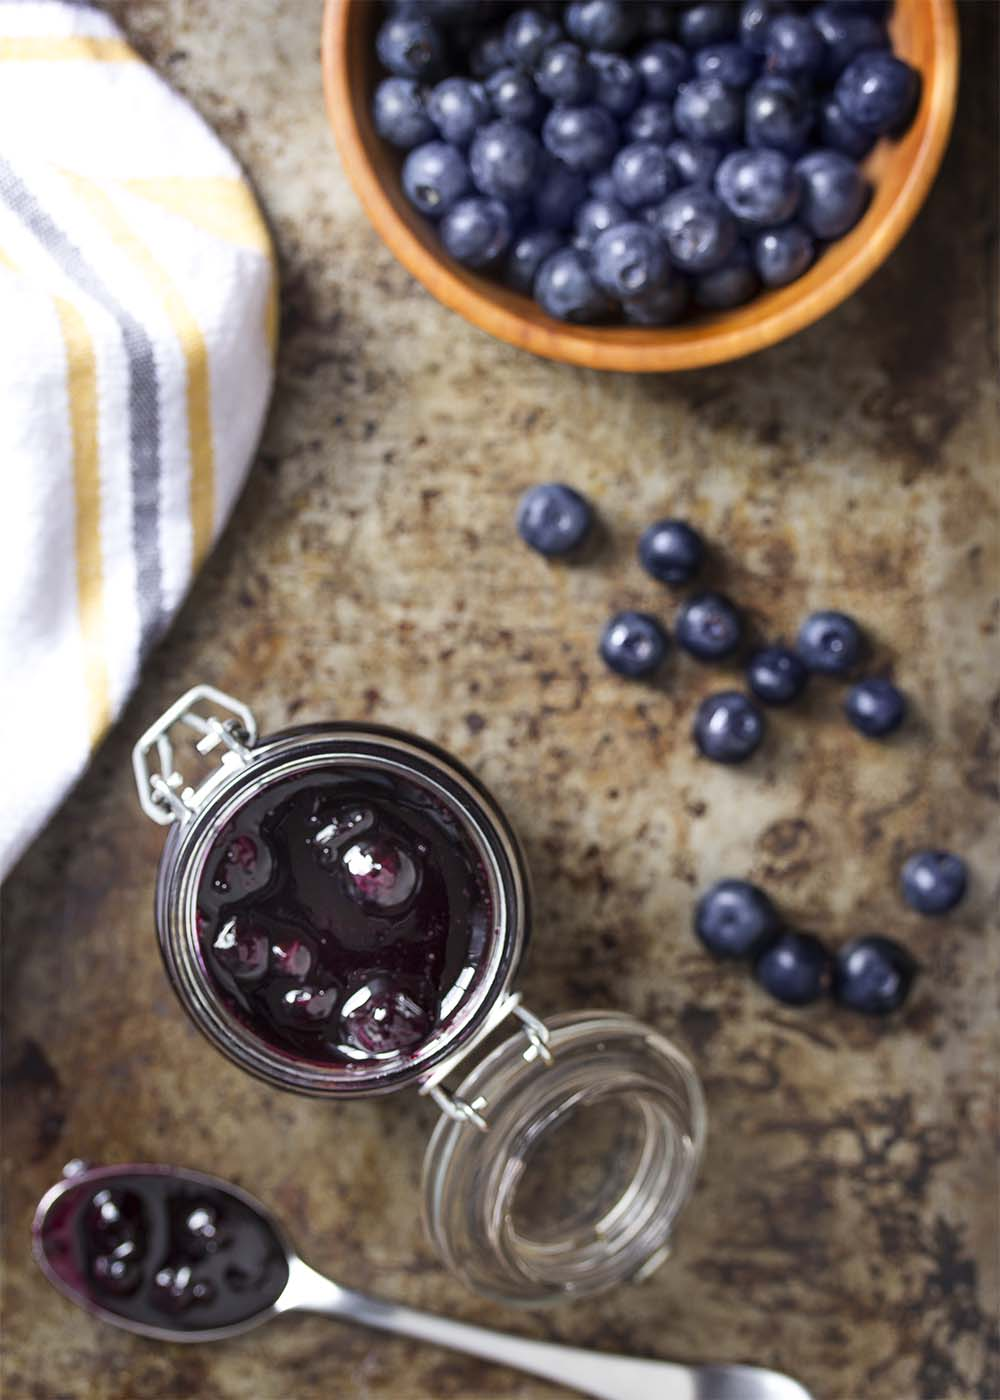 Top view of blueberry sauce in a mason jar. A spoon of sauce on the table.